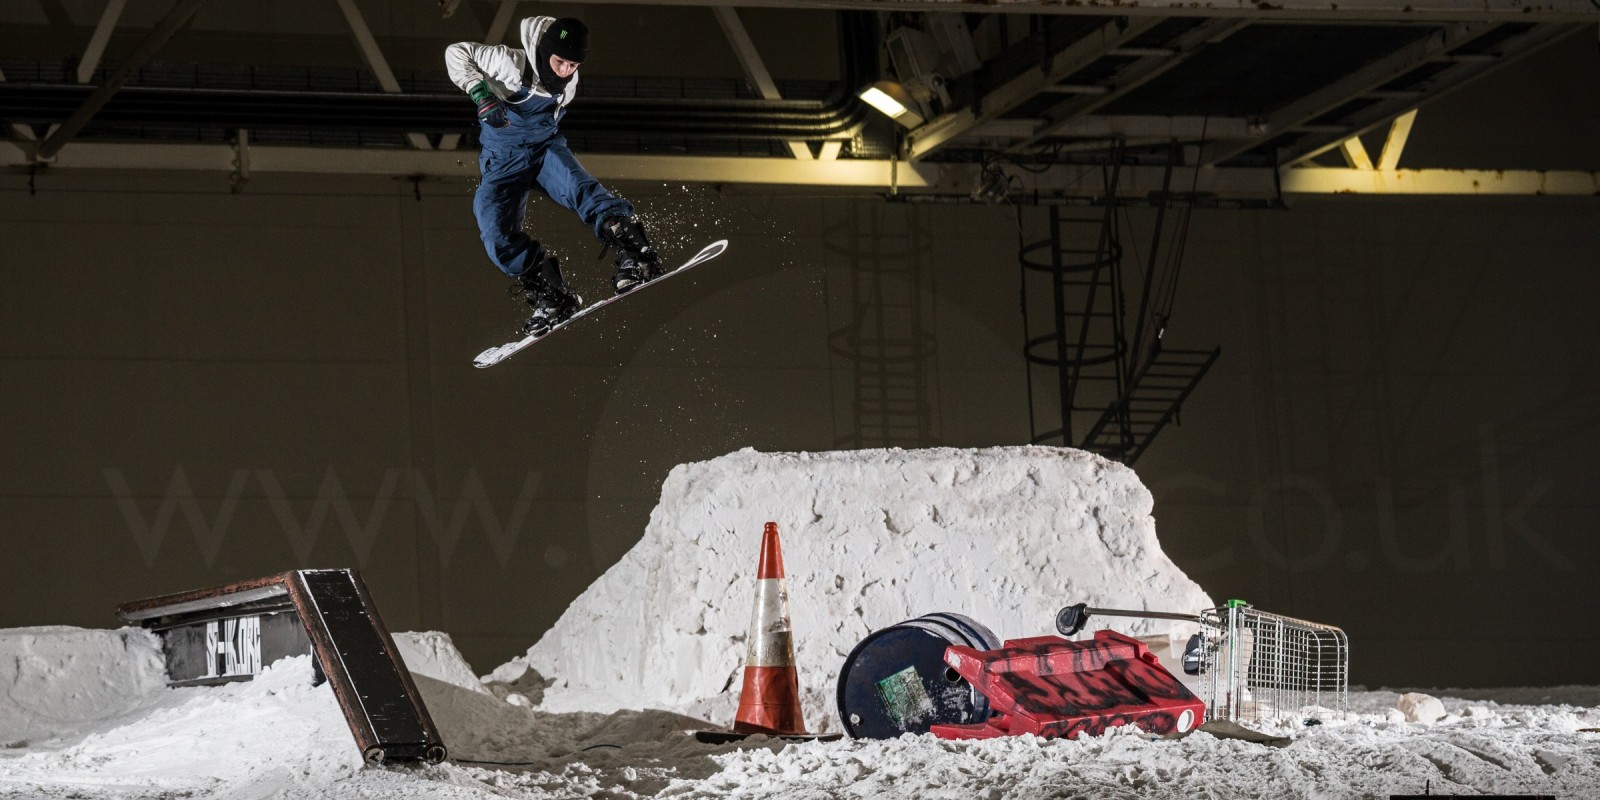 Will Smith Snowdome project | Half Cab to Fifty Fifty